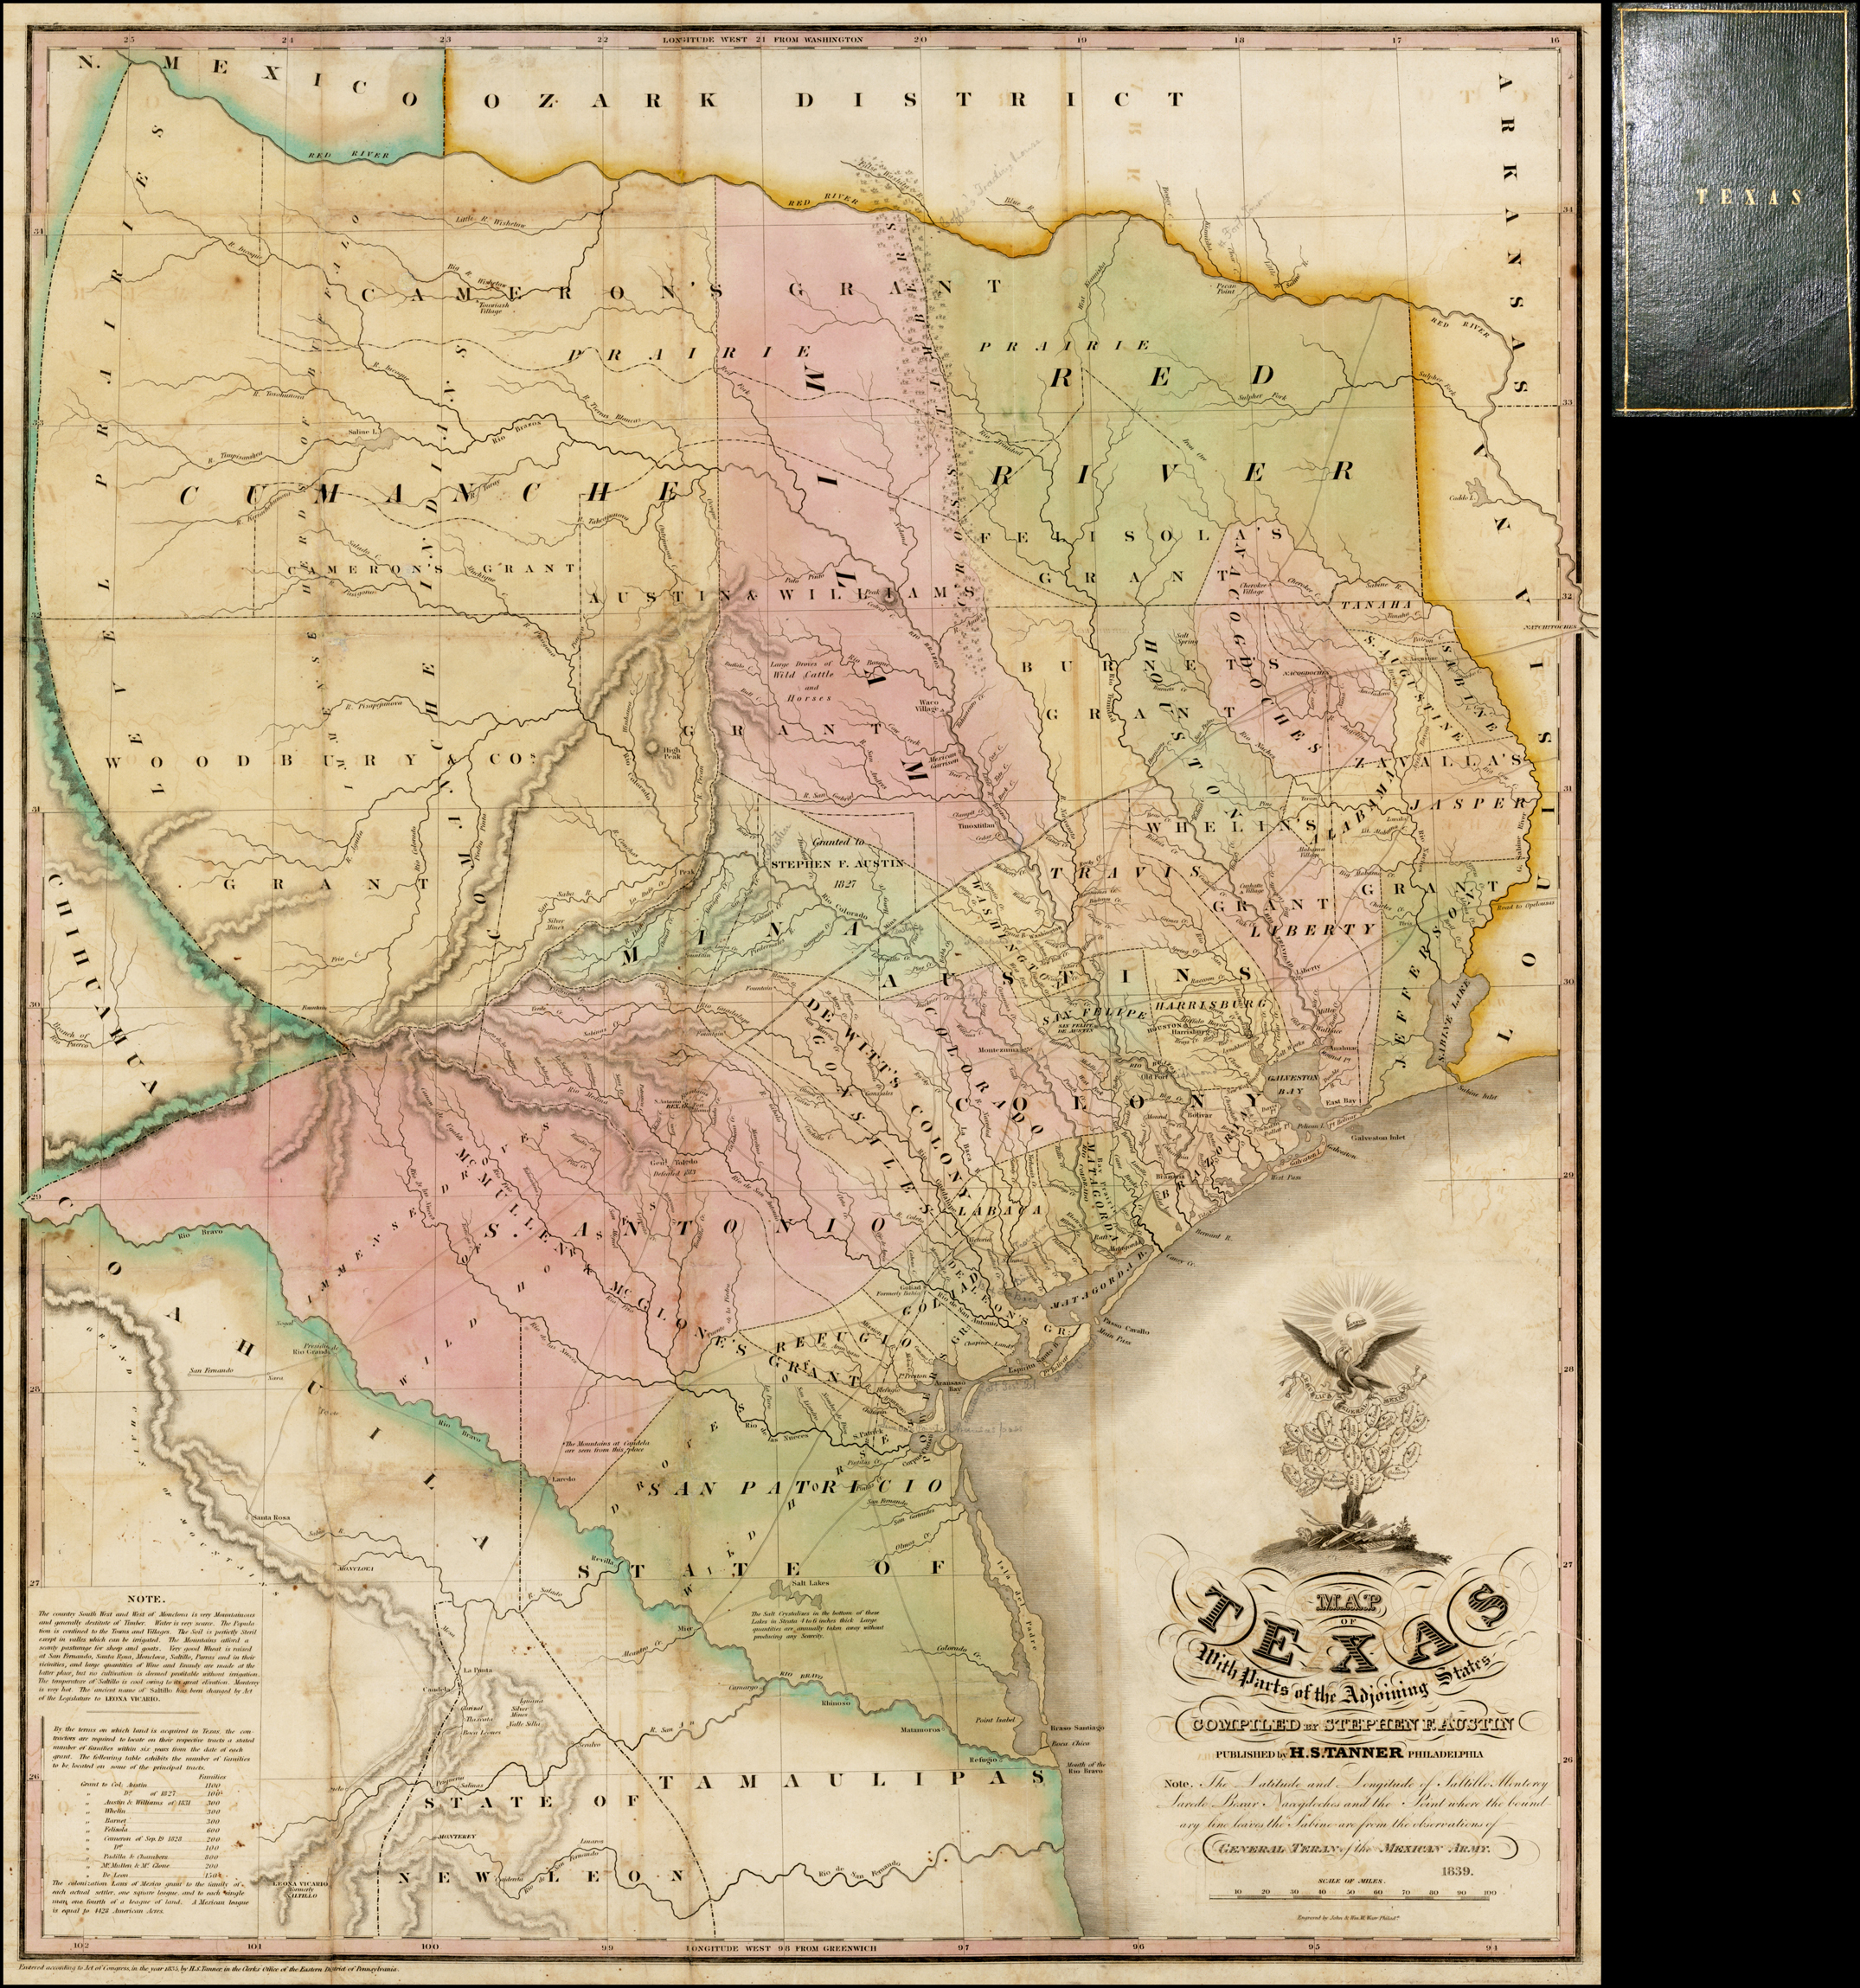 Map Of Texas Showing Austin.Map Of Texas With Parts Of The Adjoining States Compiled By Stephen